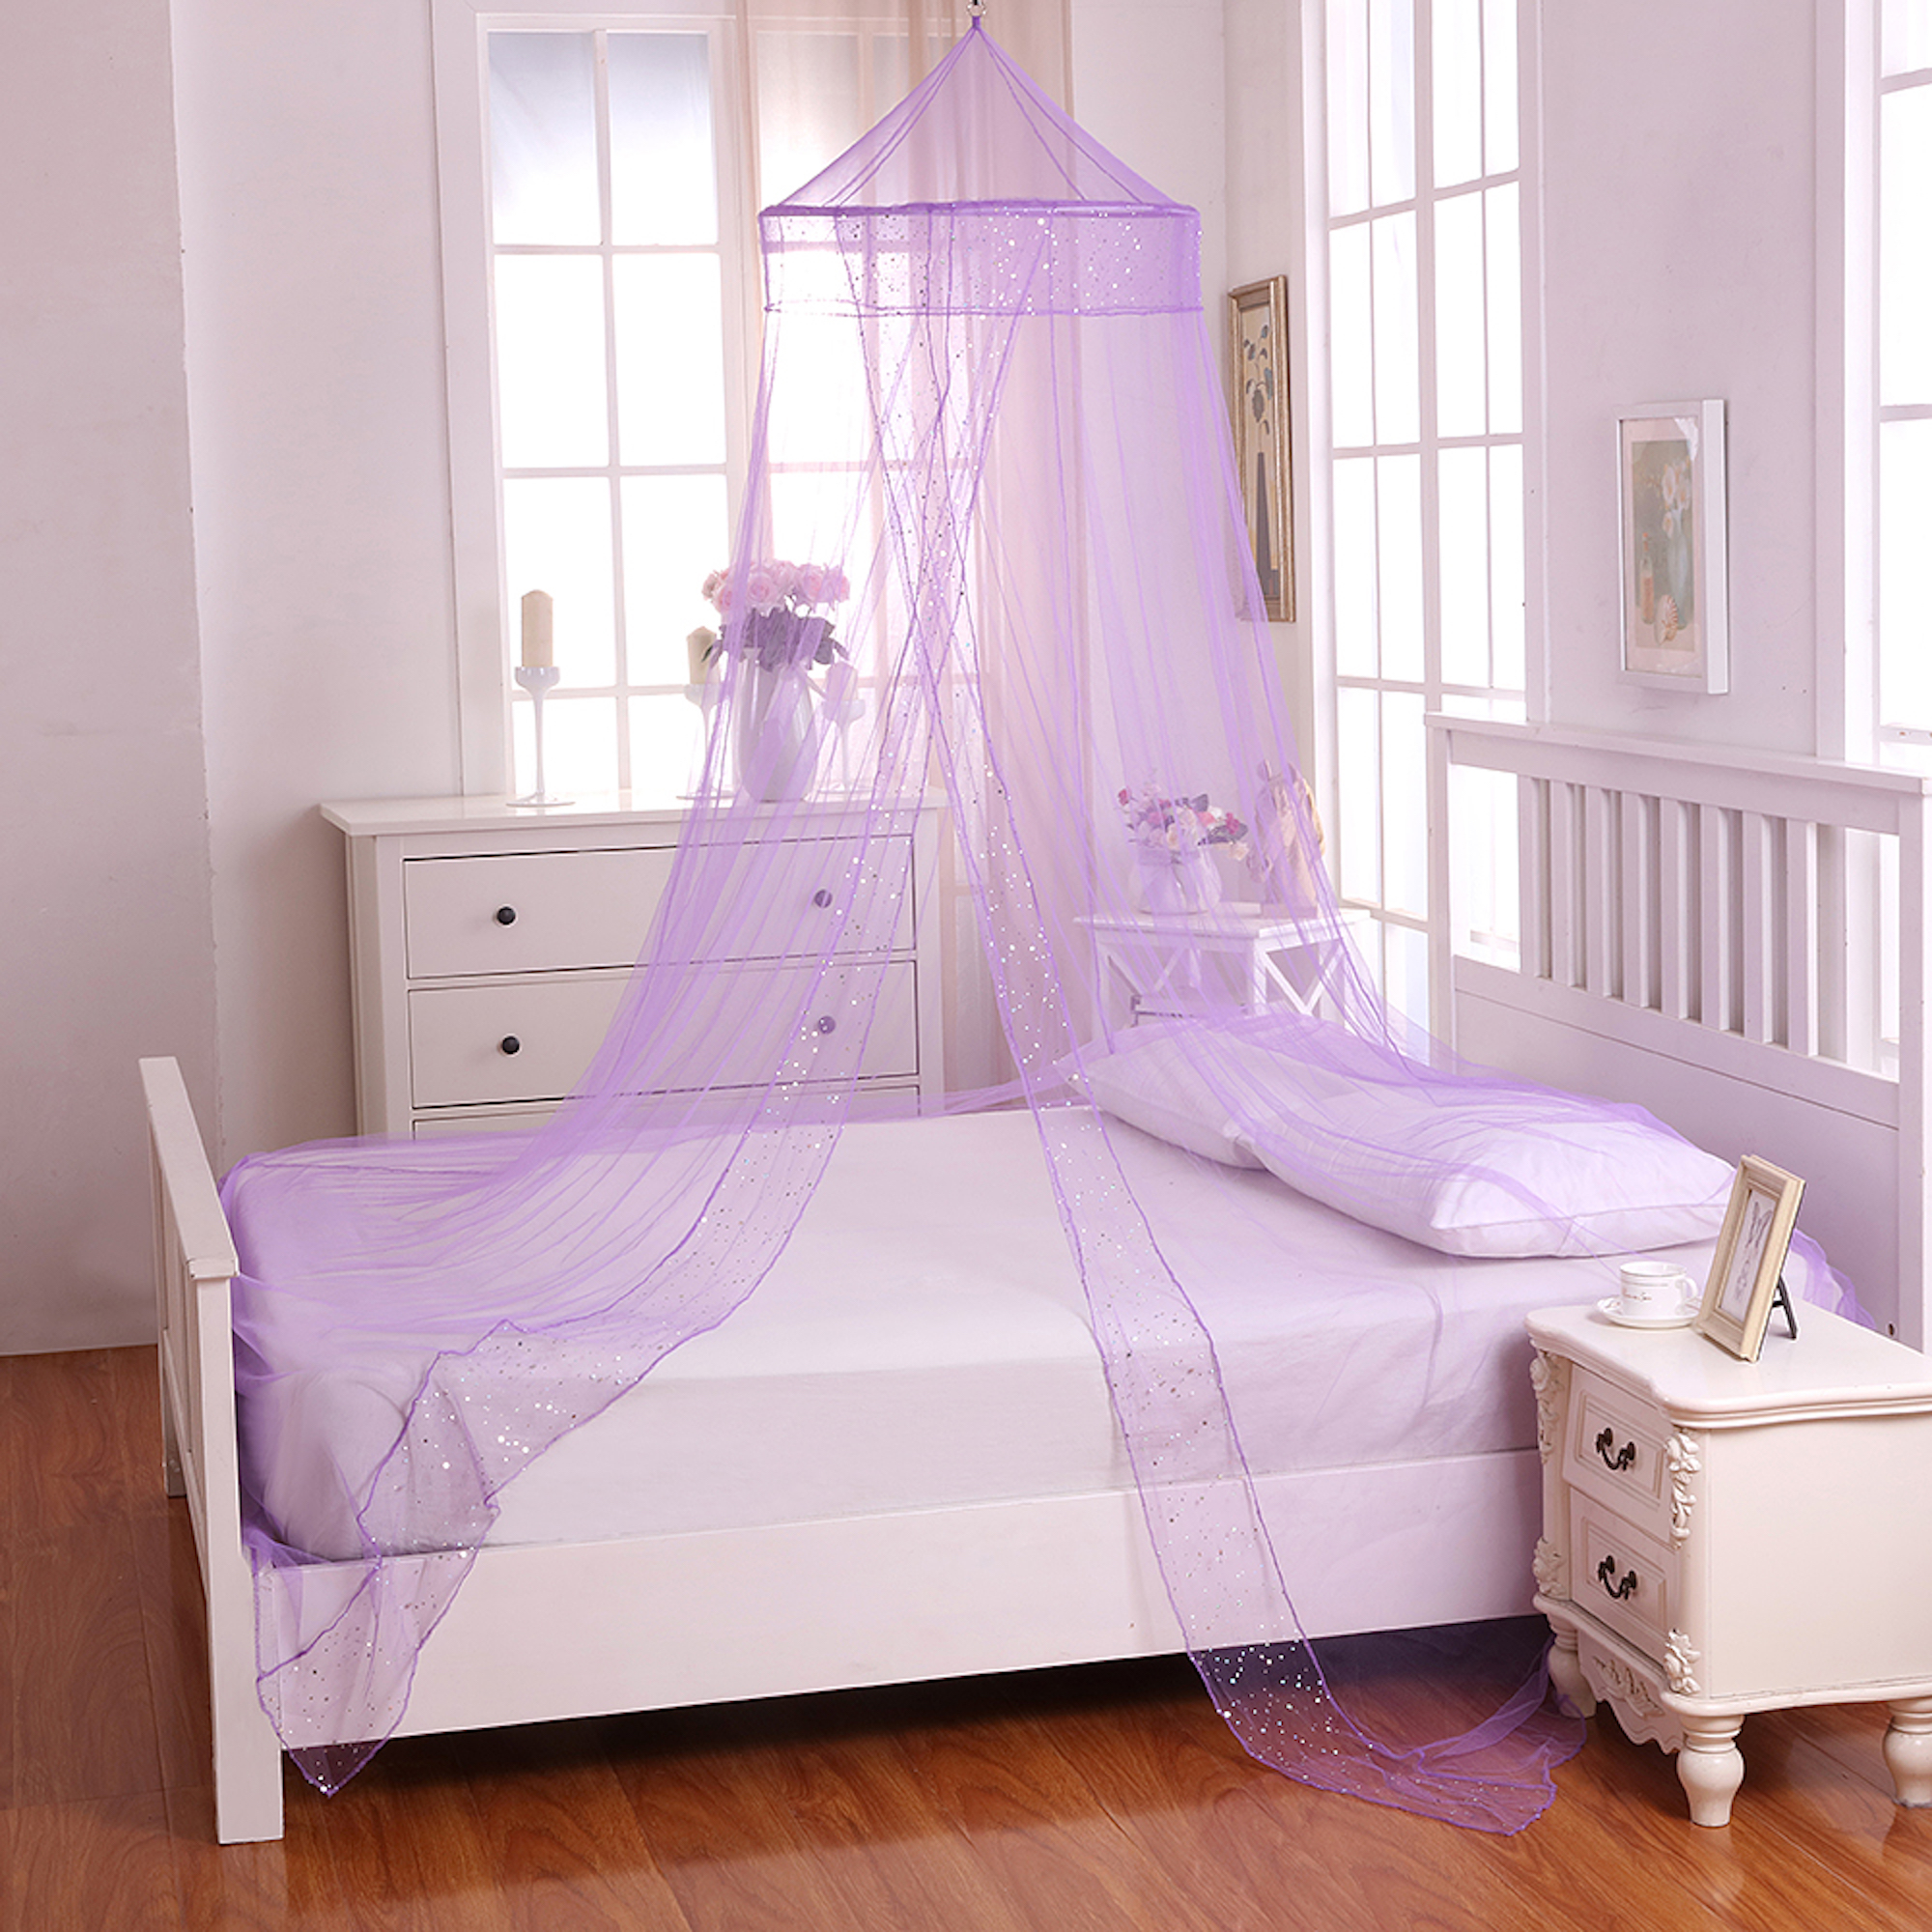 Casablanca Galaxy Collapsible Hoop Sheer Bed Canopy Purple